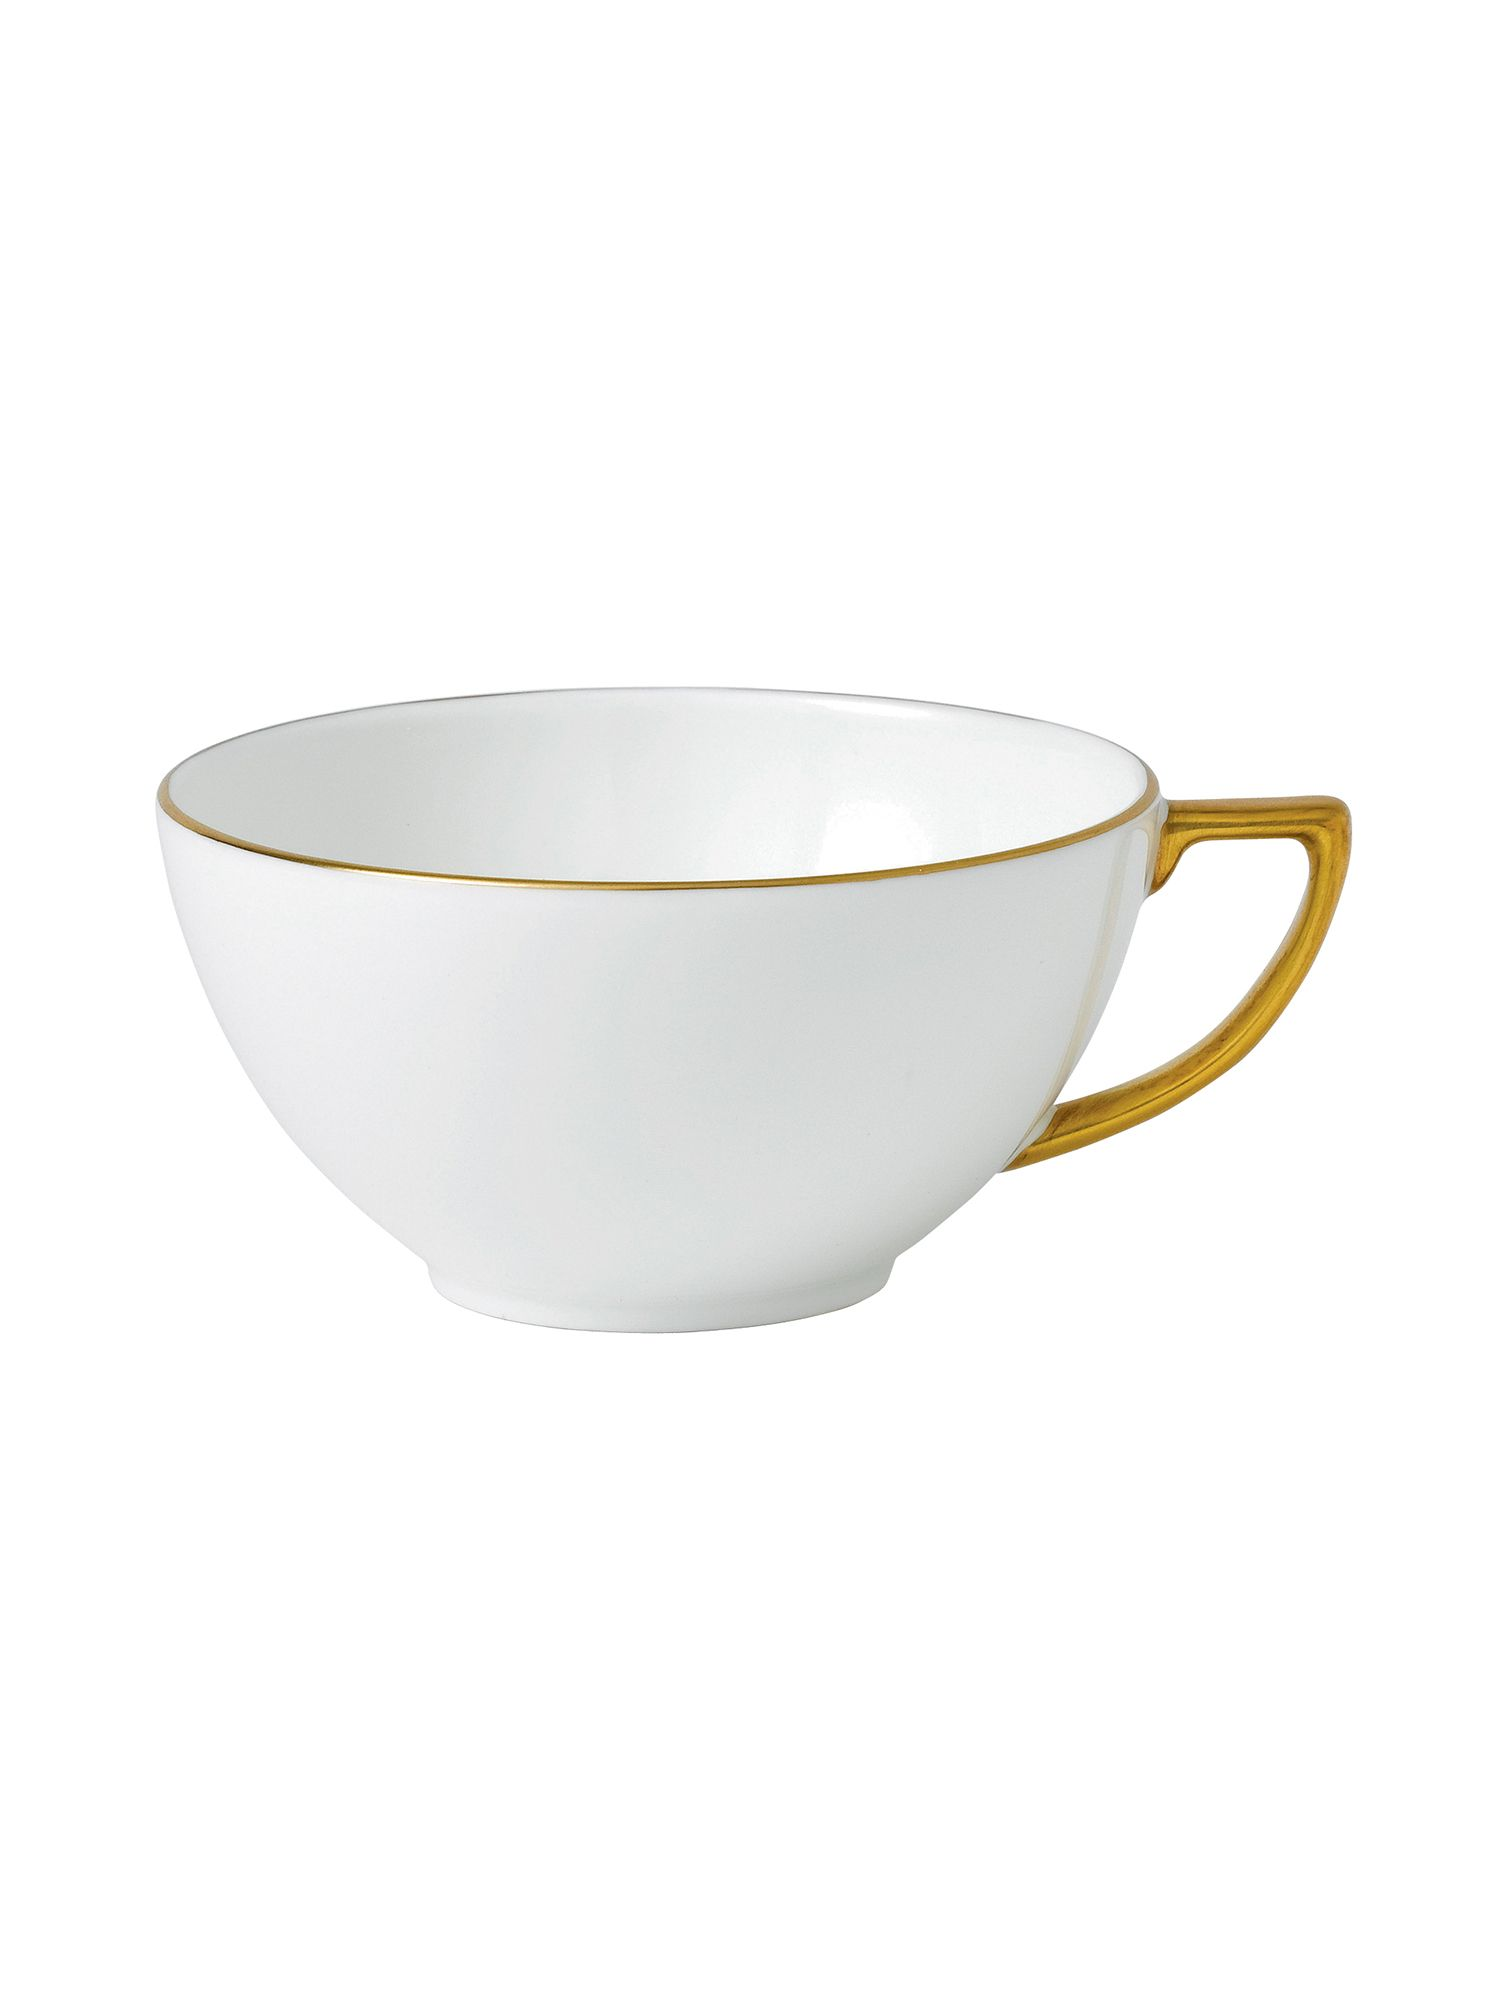 Jasper conran bone china gold tipped tea cup 0.23